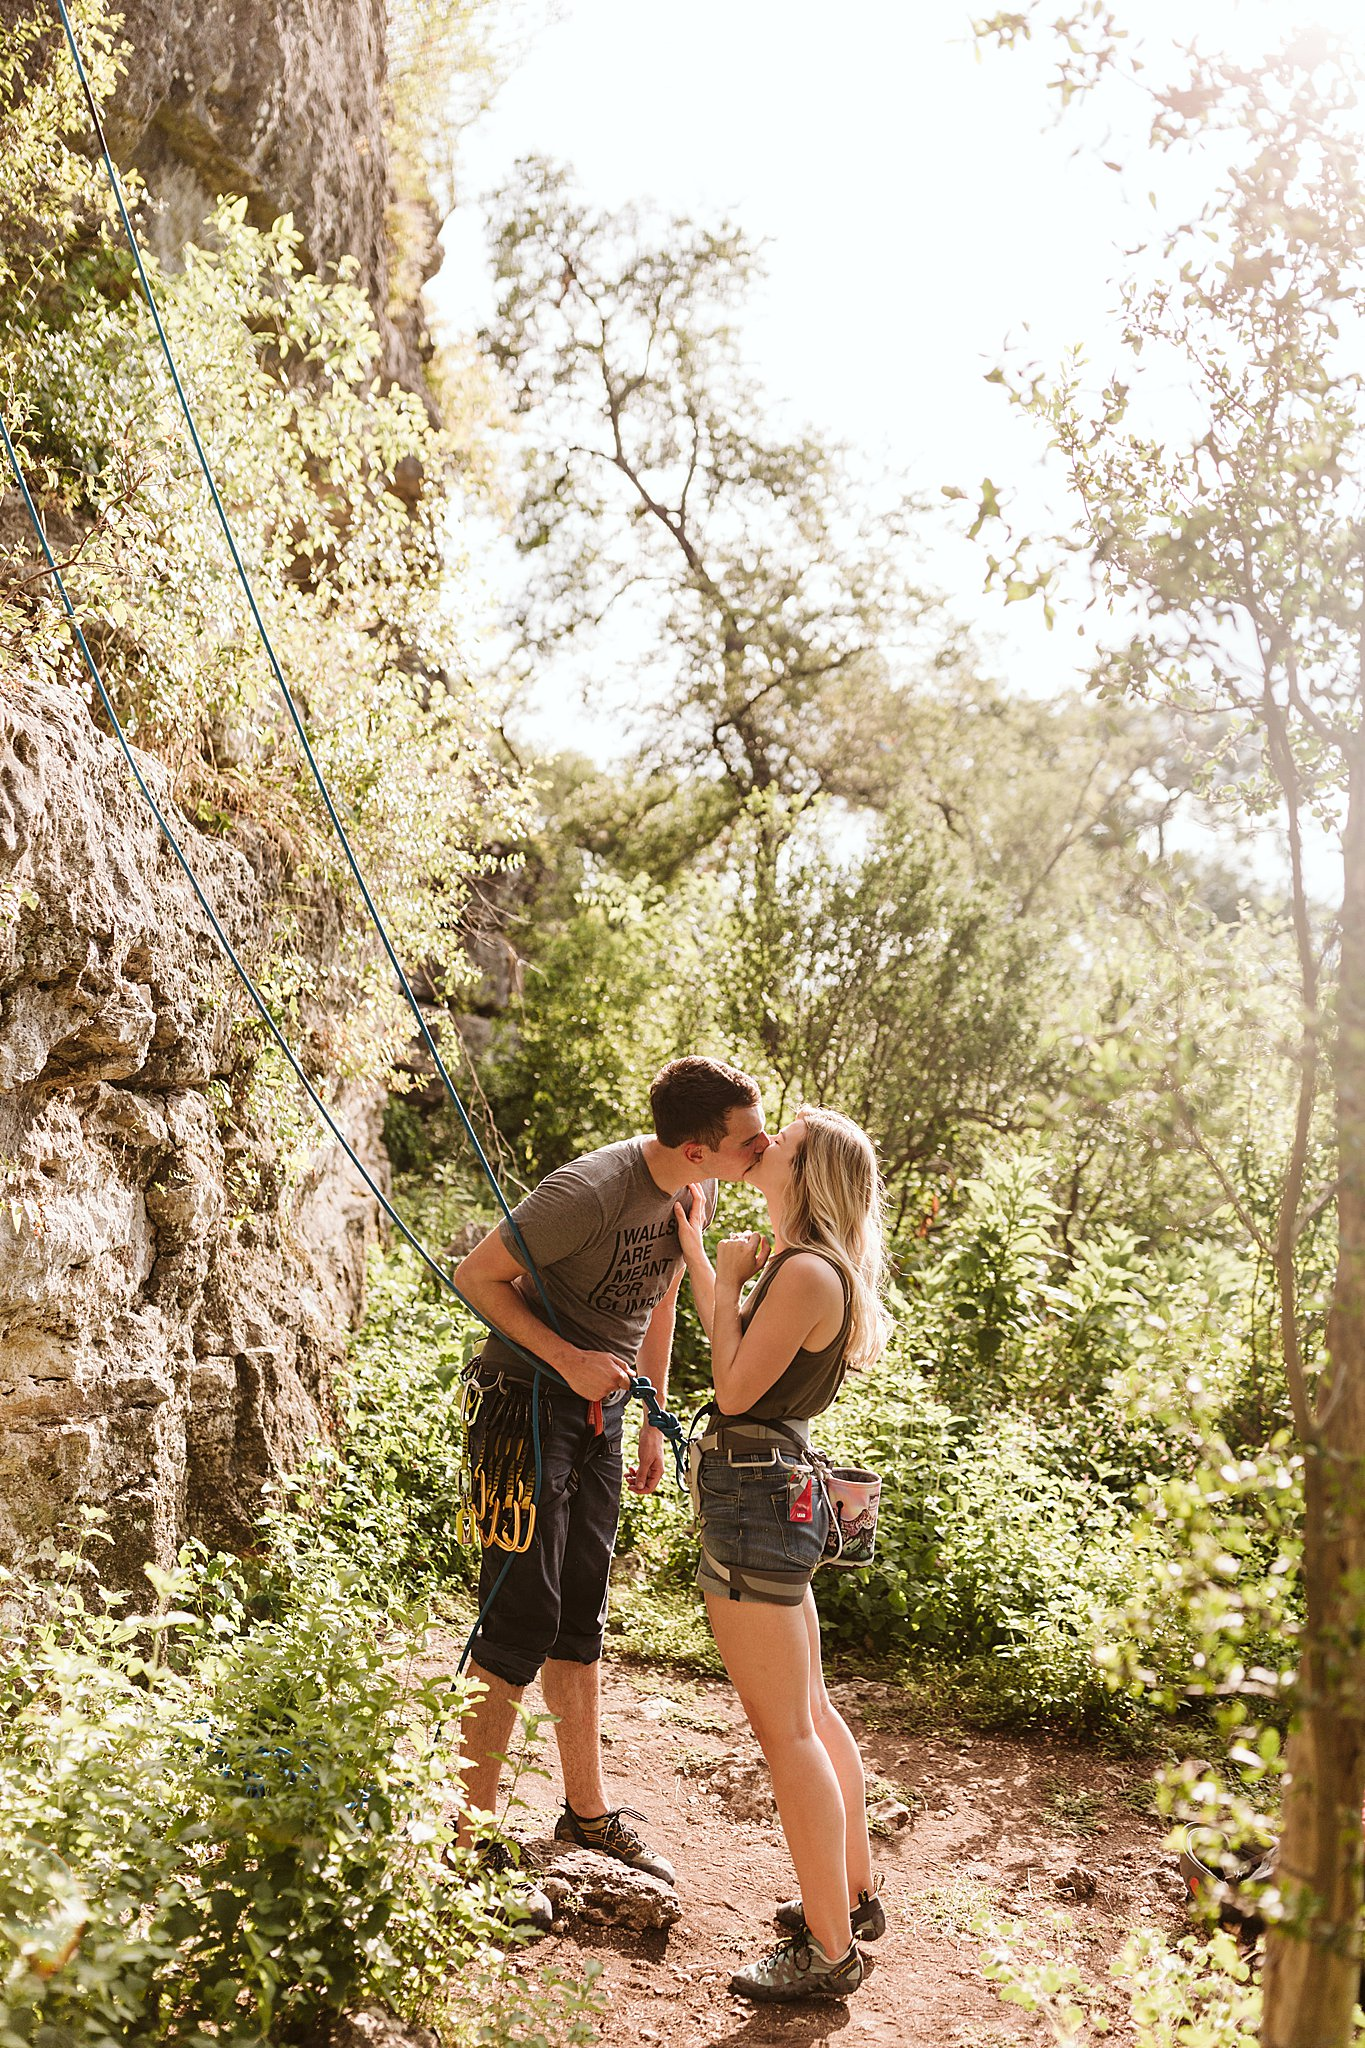 Wilderlove Co_Wedding Photographer_Dripping Springs Photography_Adventure Engagemenet_Rock Climbing Engagement_Hill Country Photographer_North Texas Photographer_0006.jpg